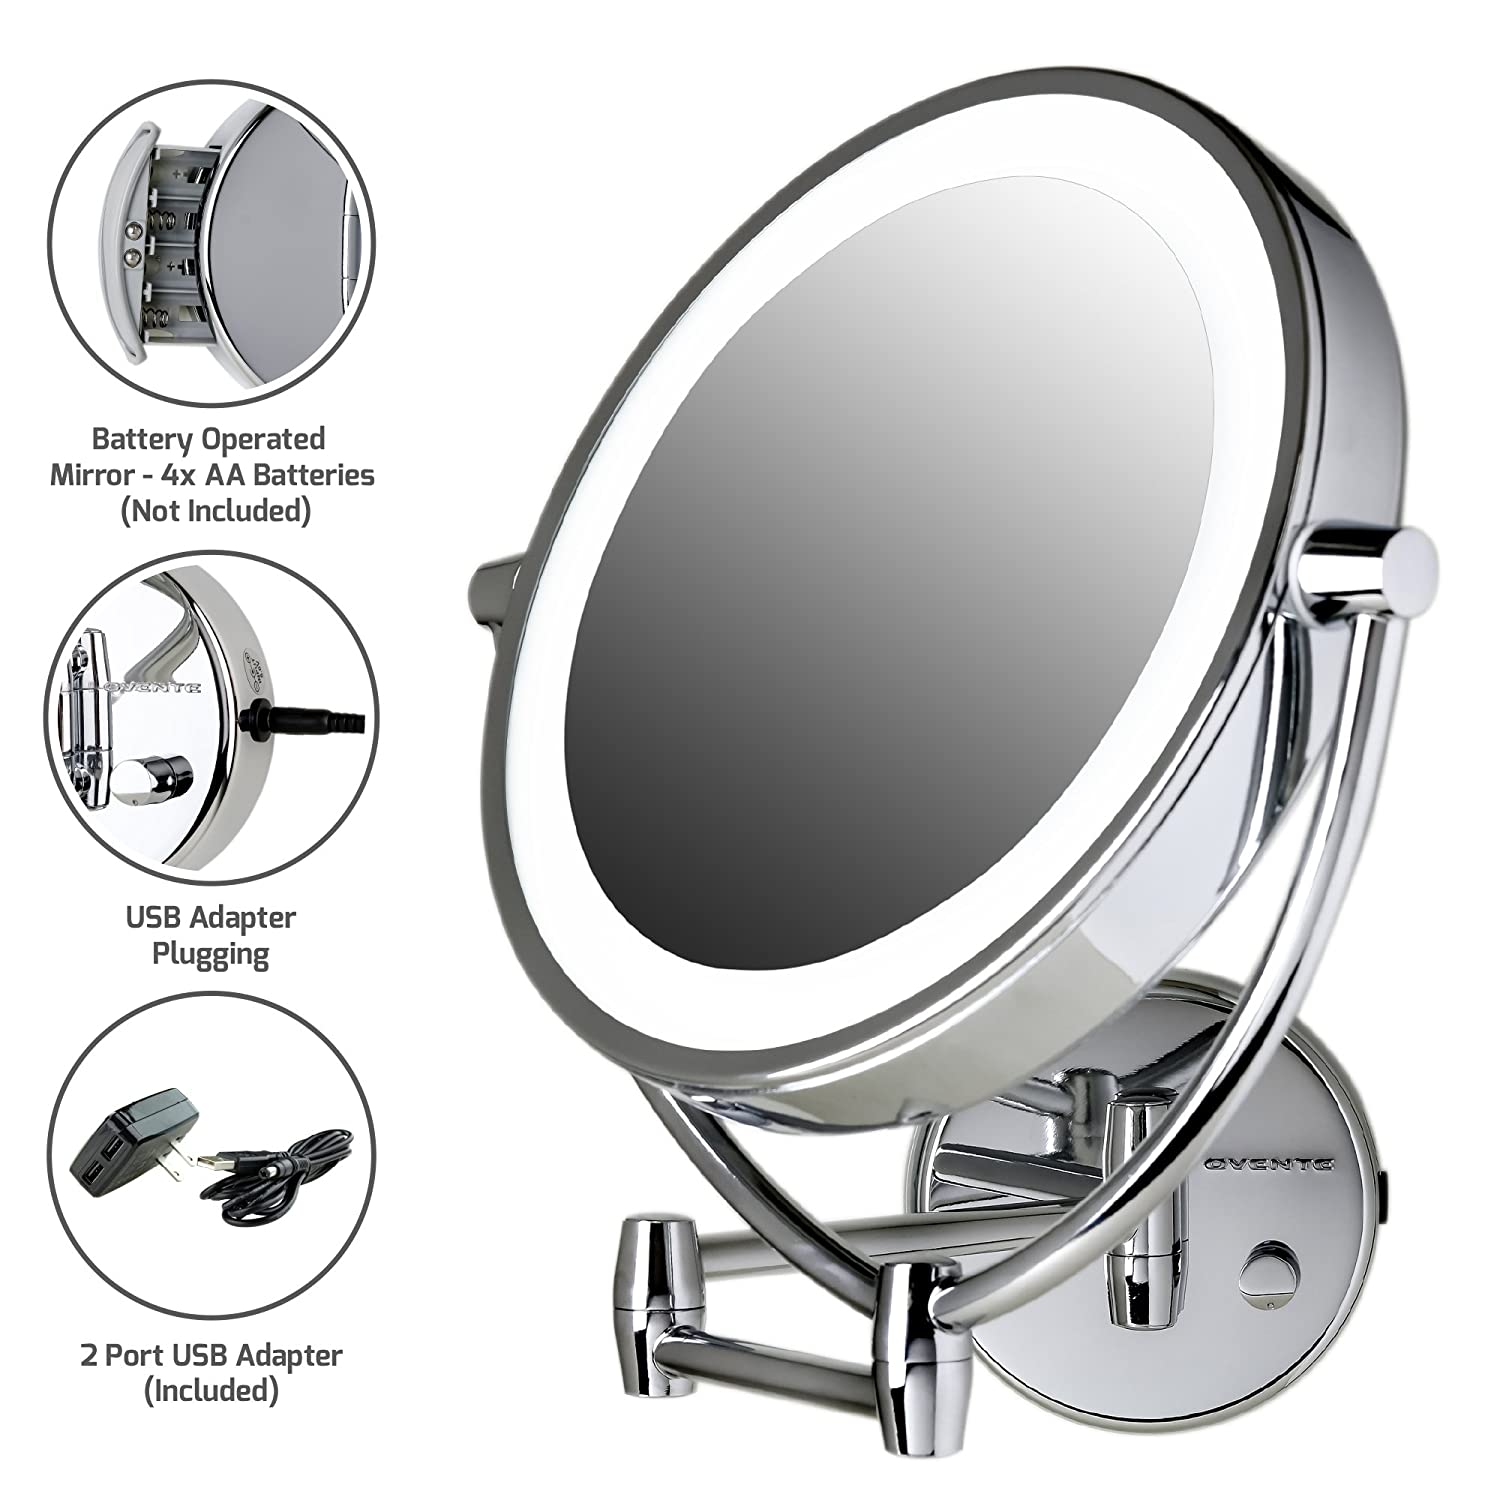 Ovente MLW45CH 9.5-Inch LED Lighted Wall Mount Makeup Mirror, 1x/10 Magnification, Polished Chrome Ovente (Beauty)